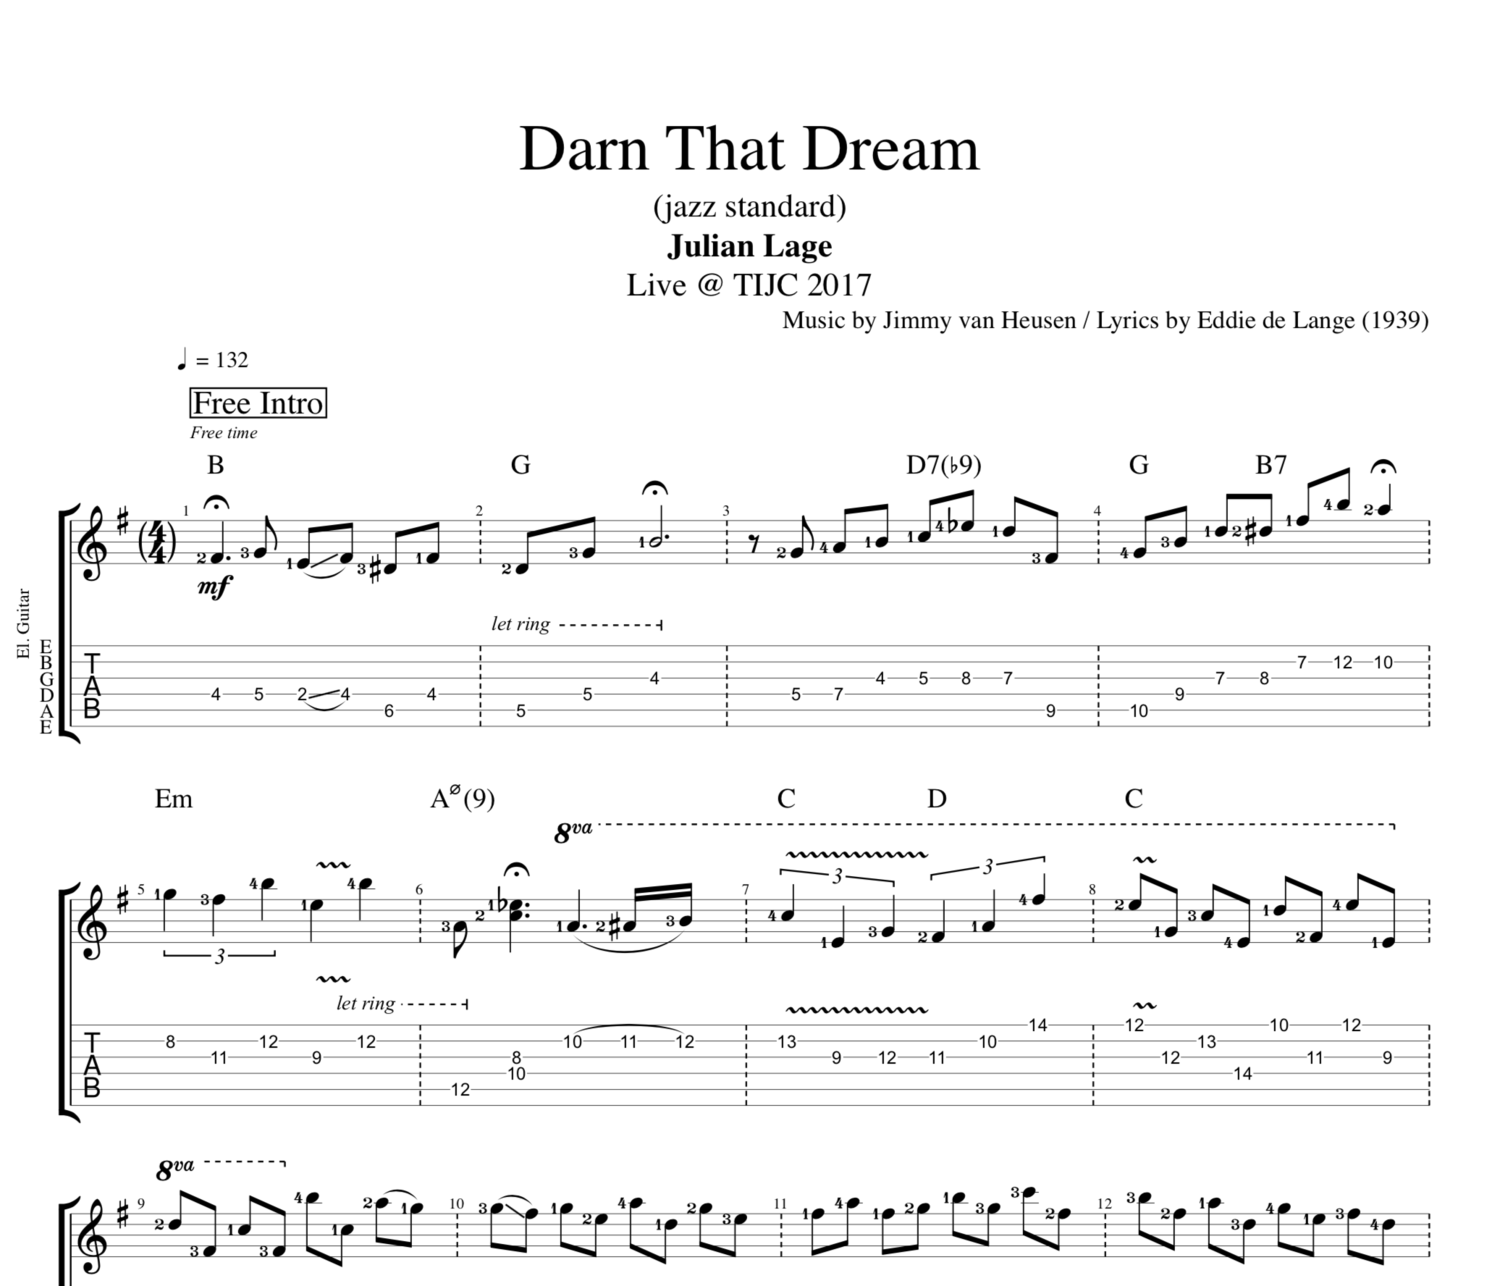 Darn That Dream Tijc 2017 By Julian Lage Guitar Tab Sheet